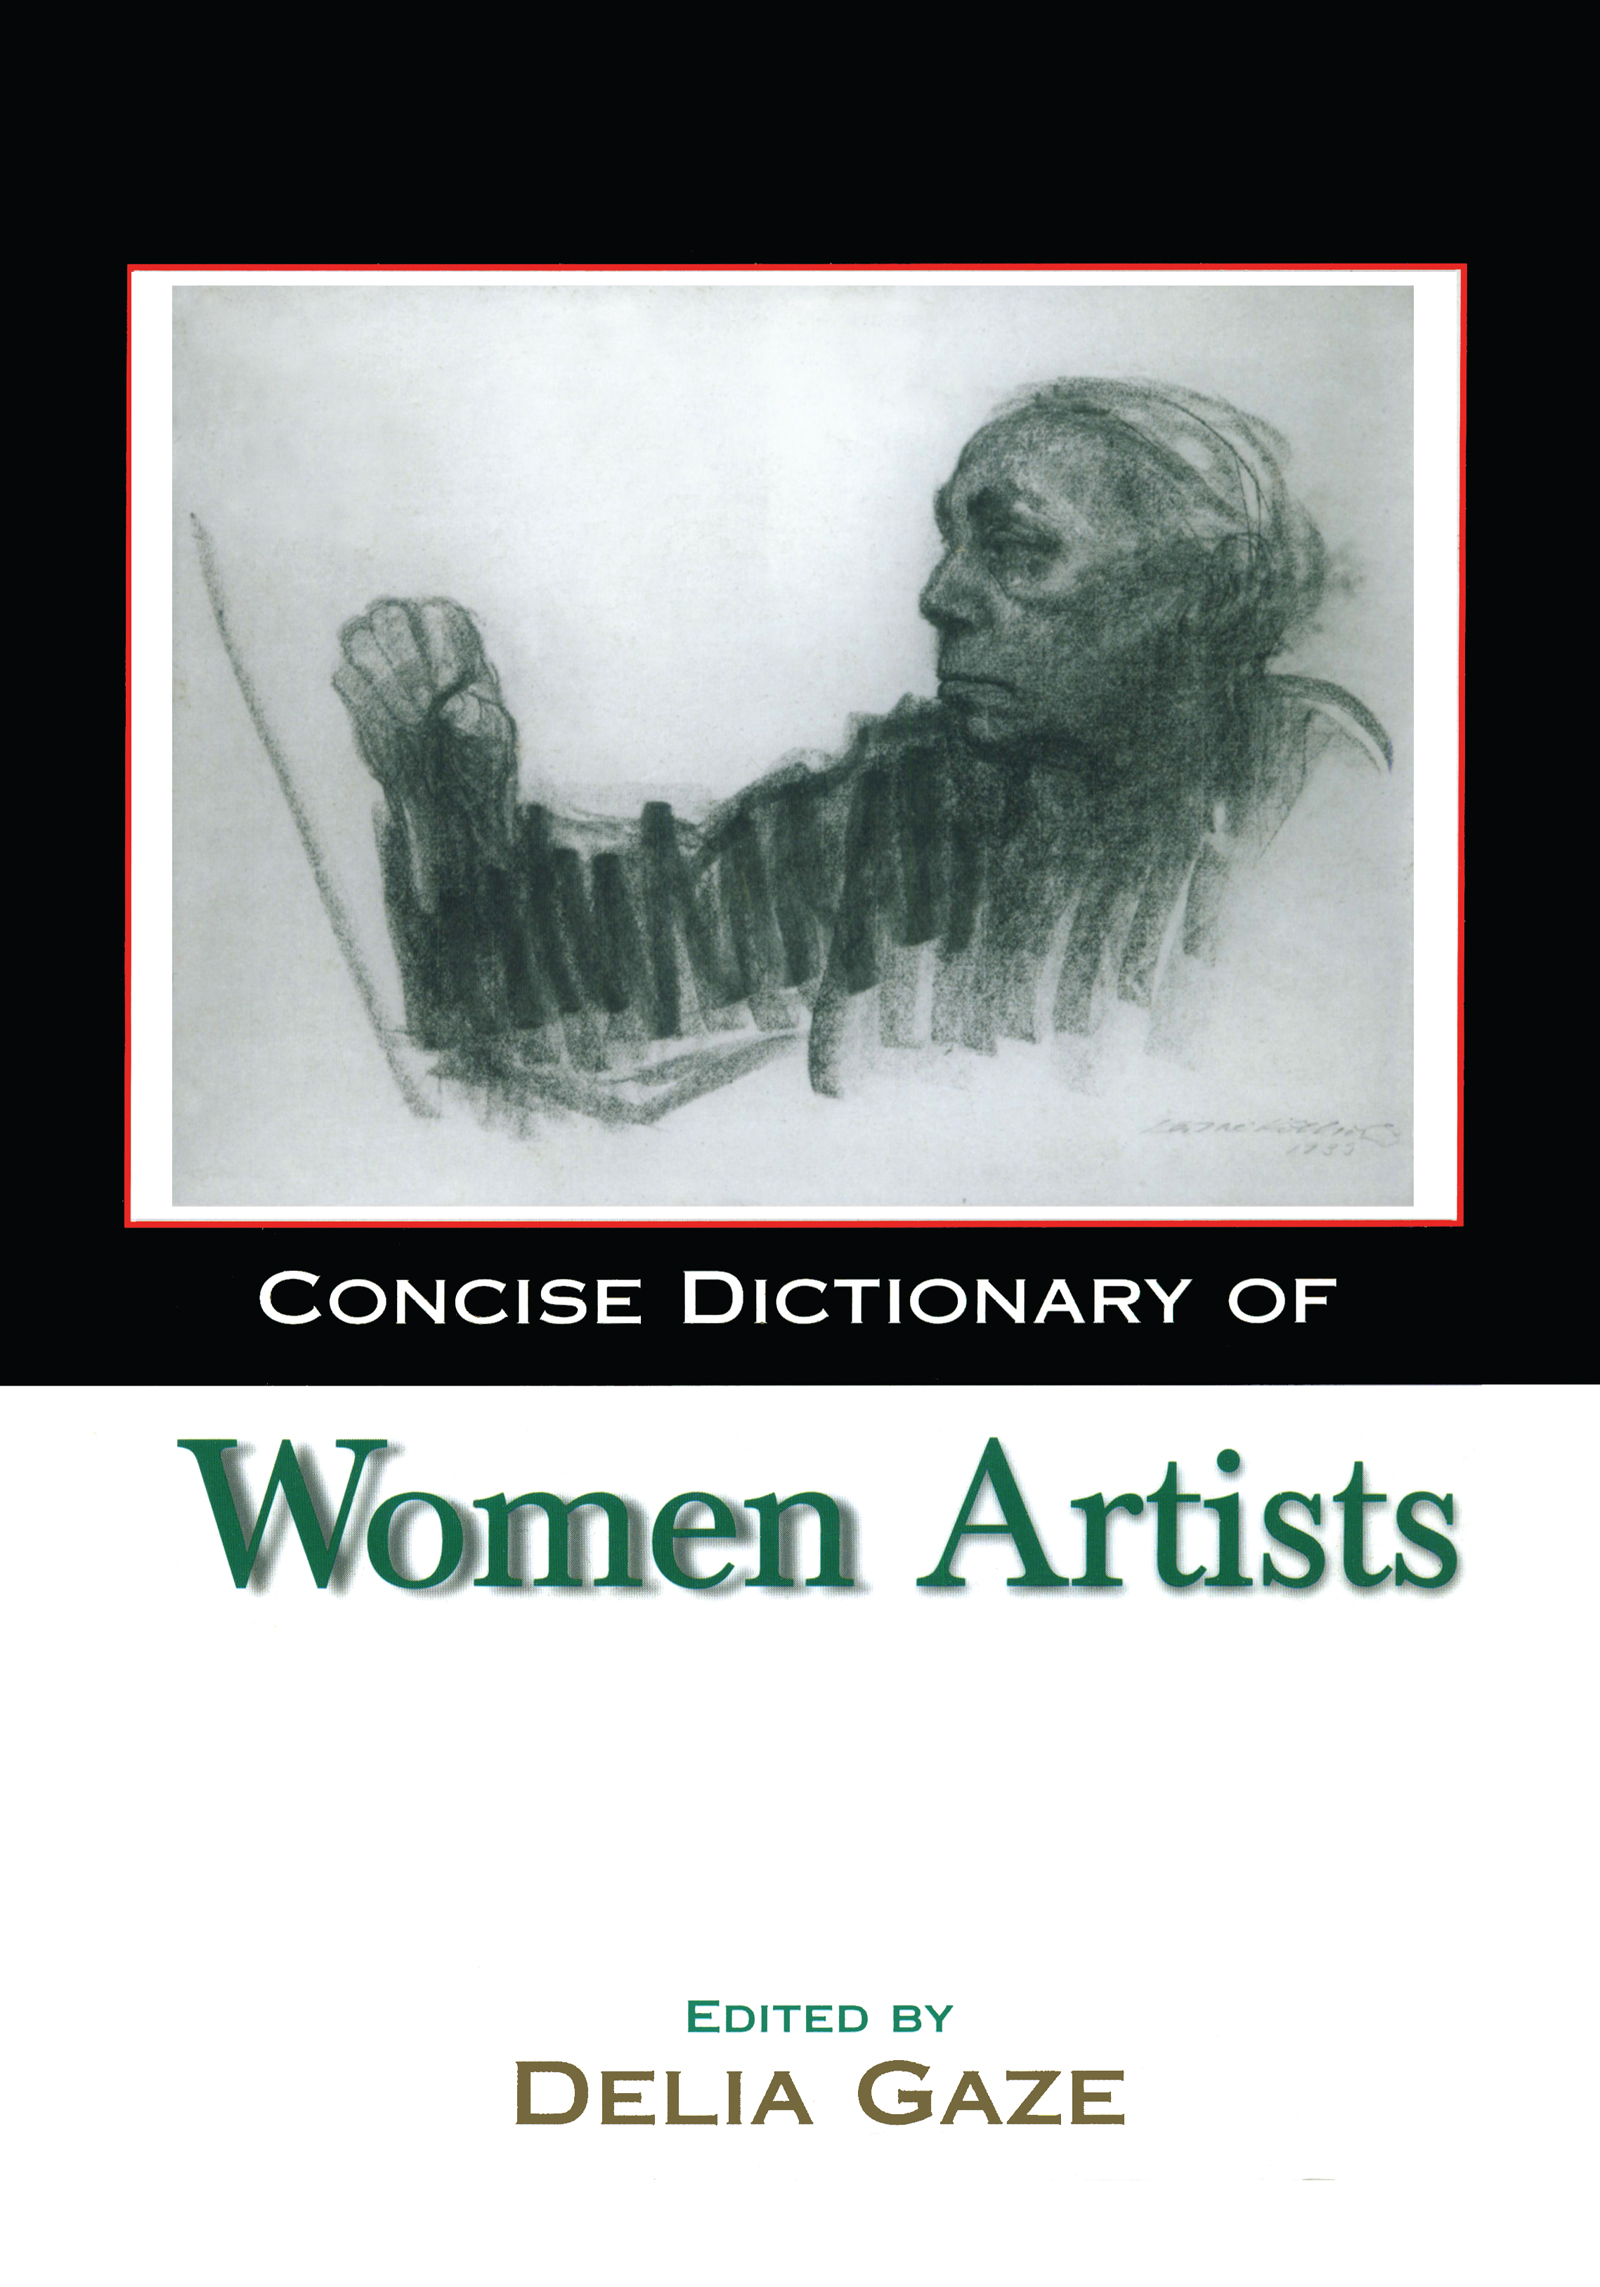 Concise Dictionary of Women Artists